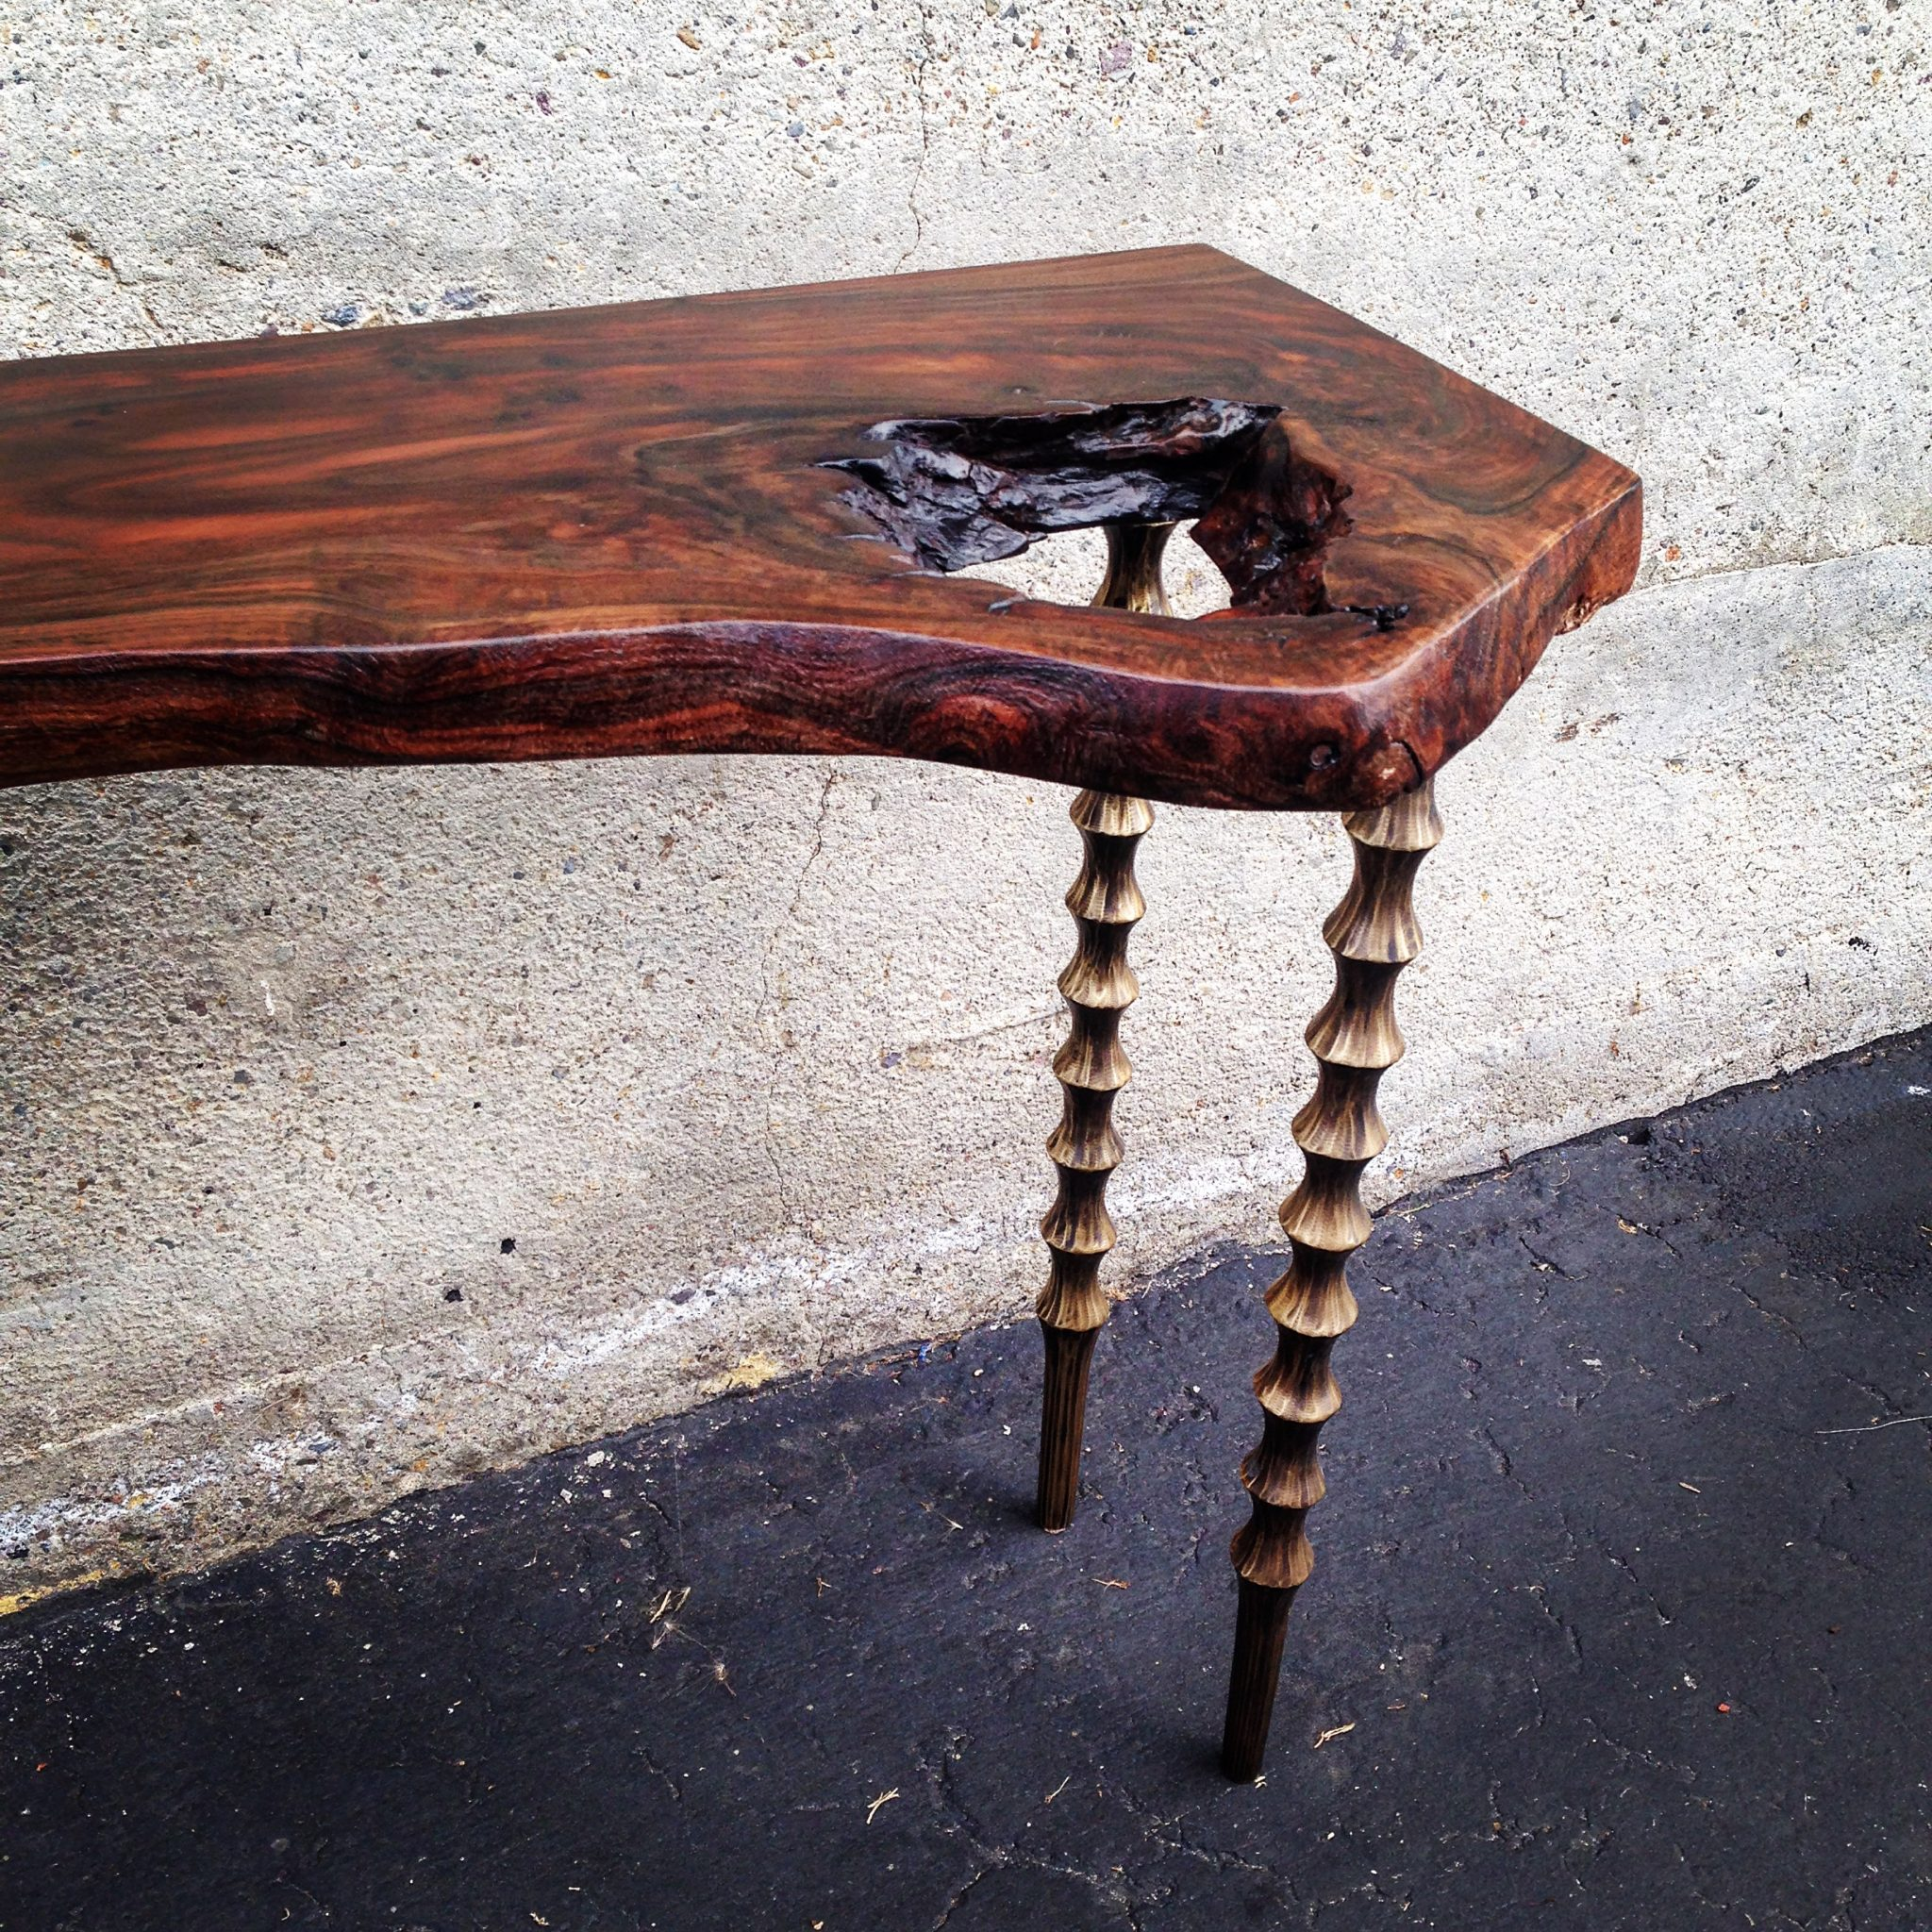 Live edge wood slab side table with carved wood legs